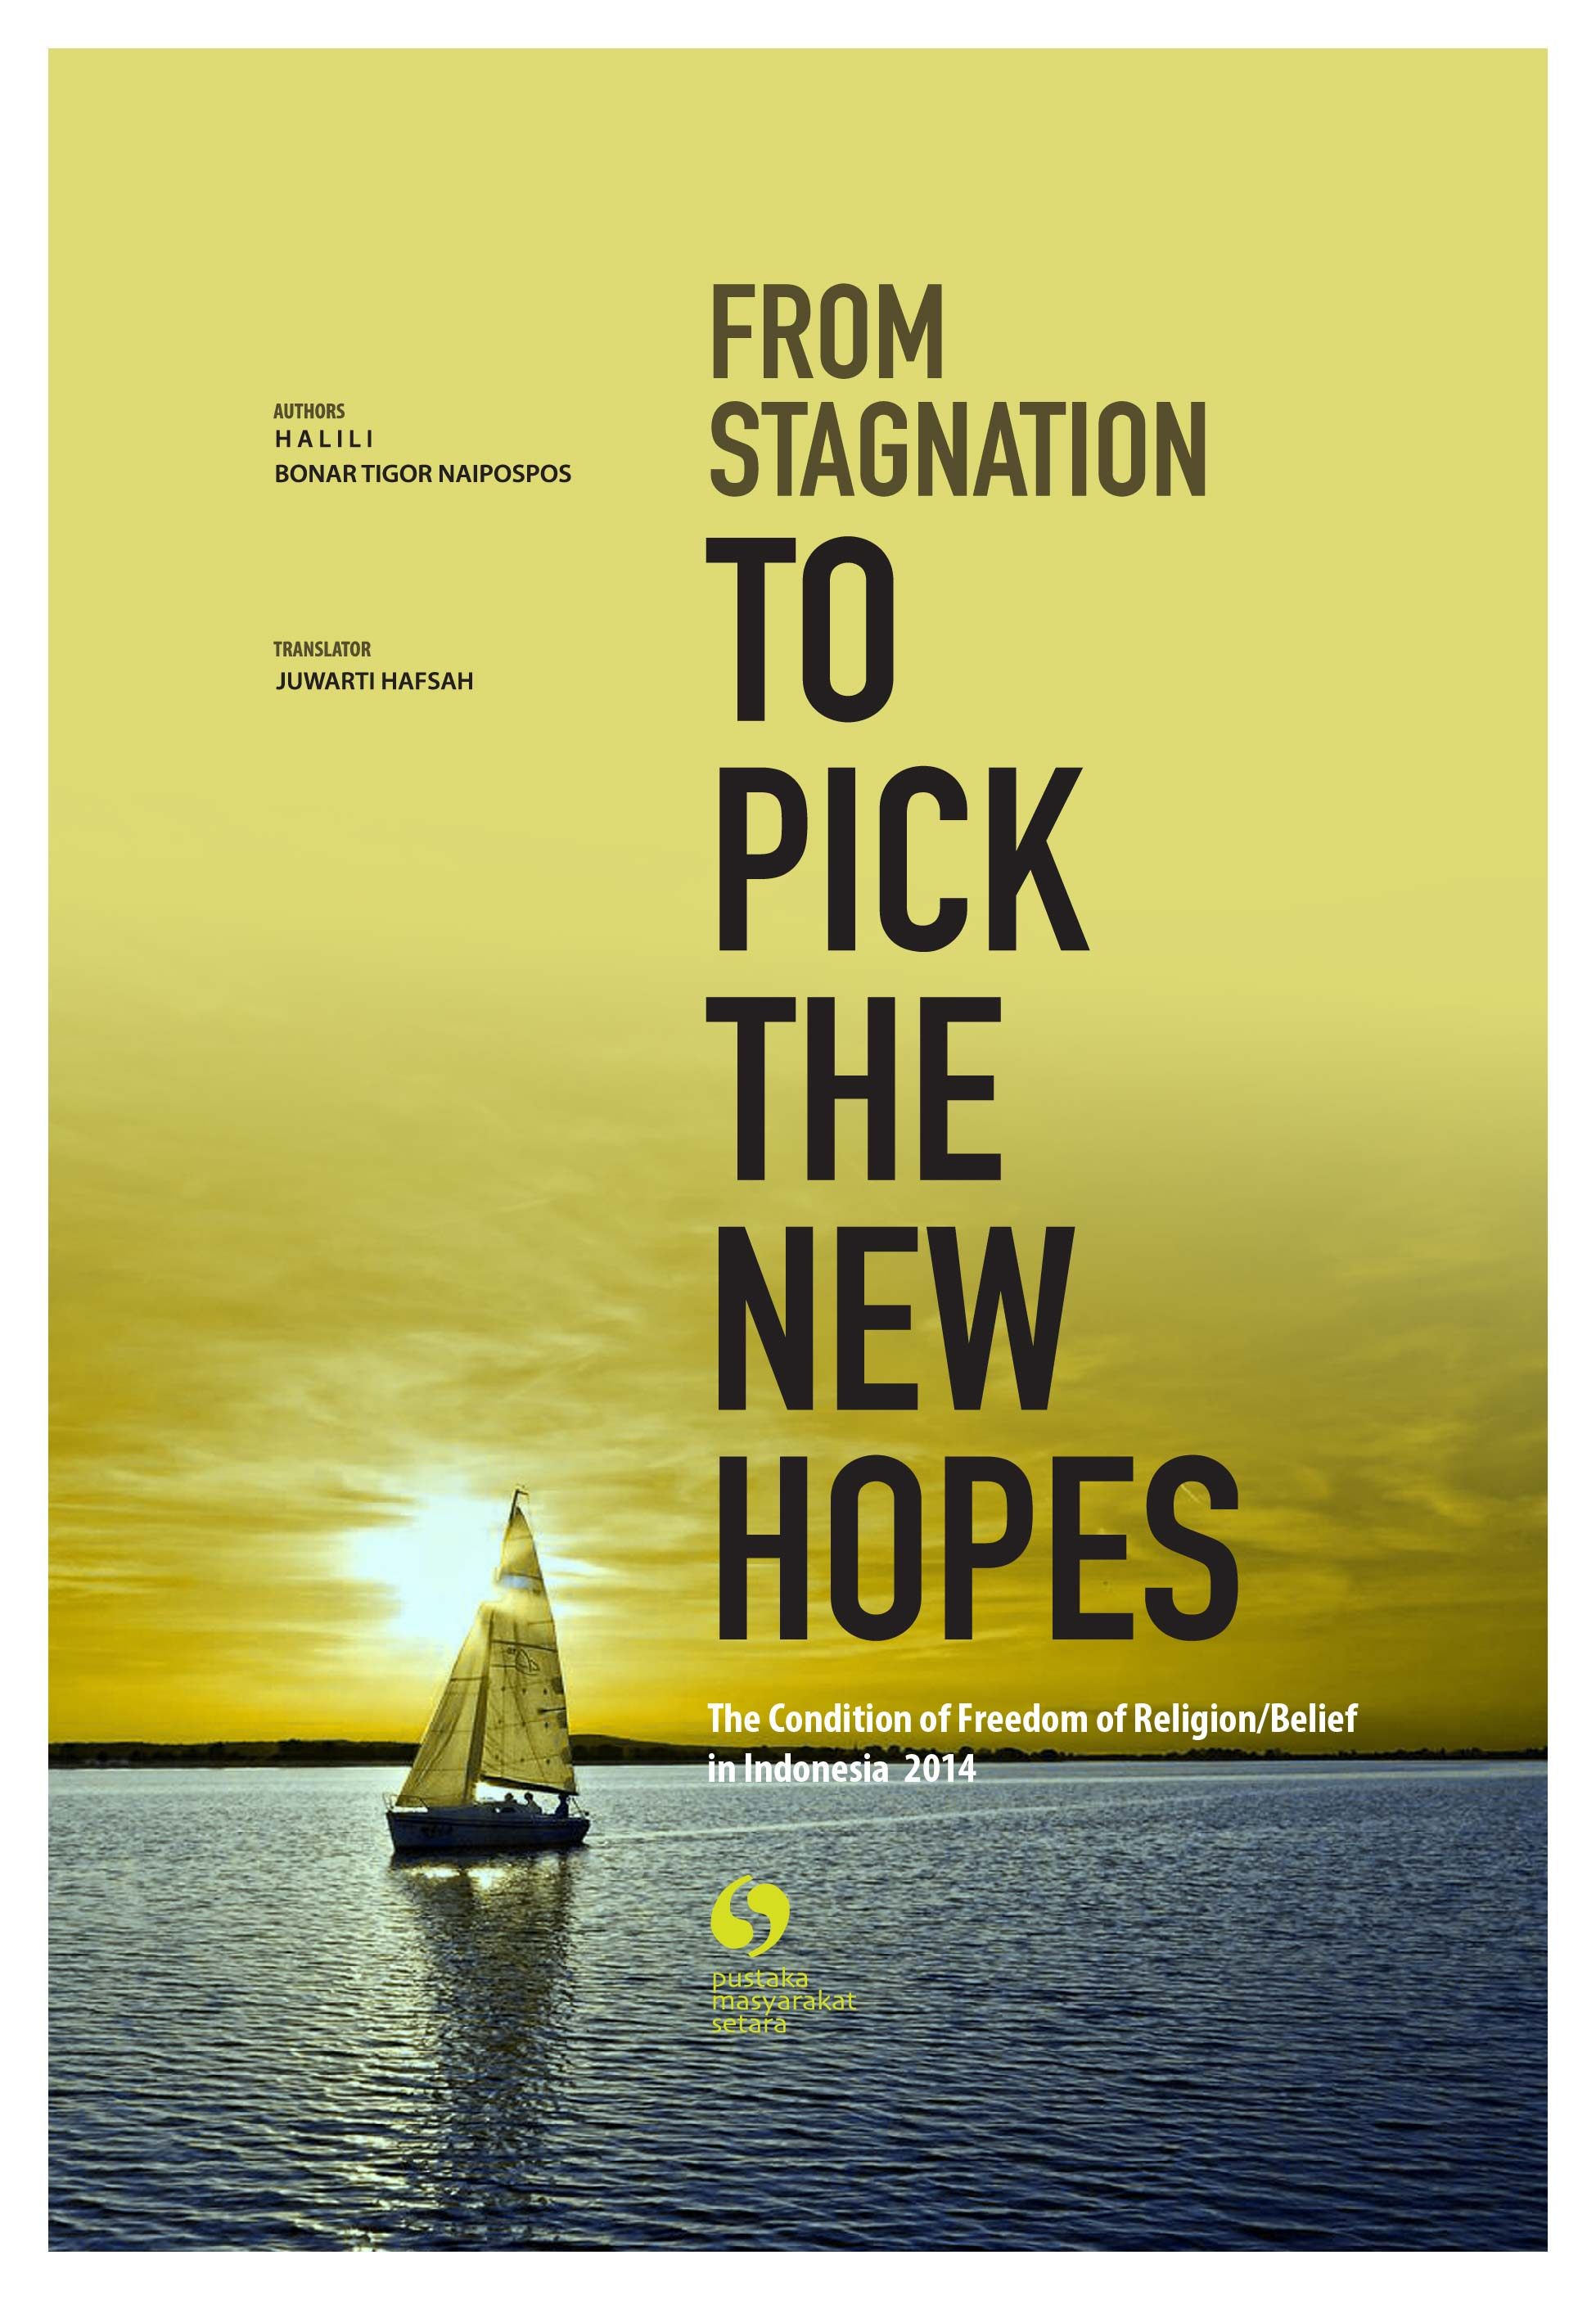 (English) From Stagnation To Pick The New Hopes